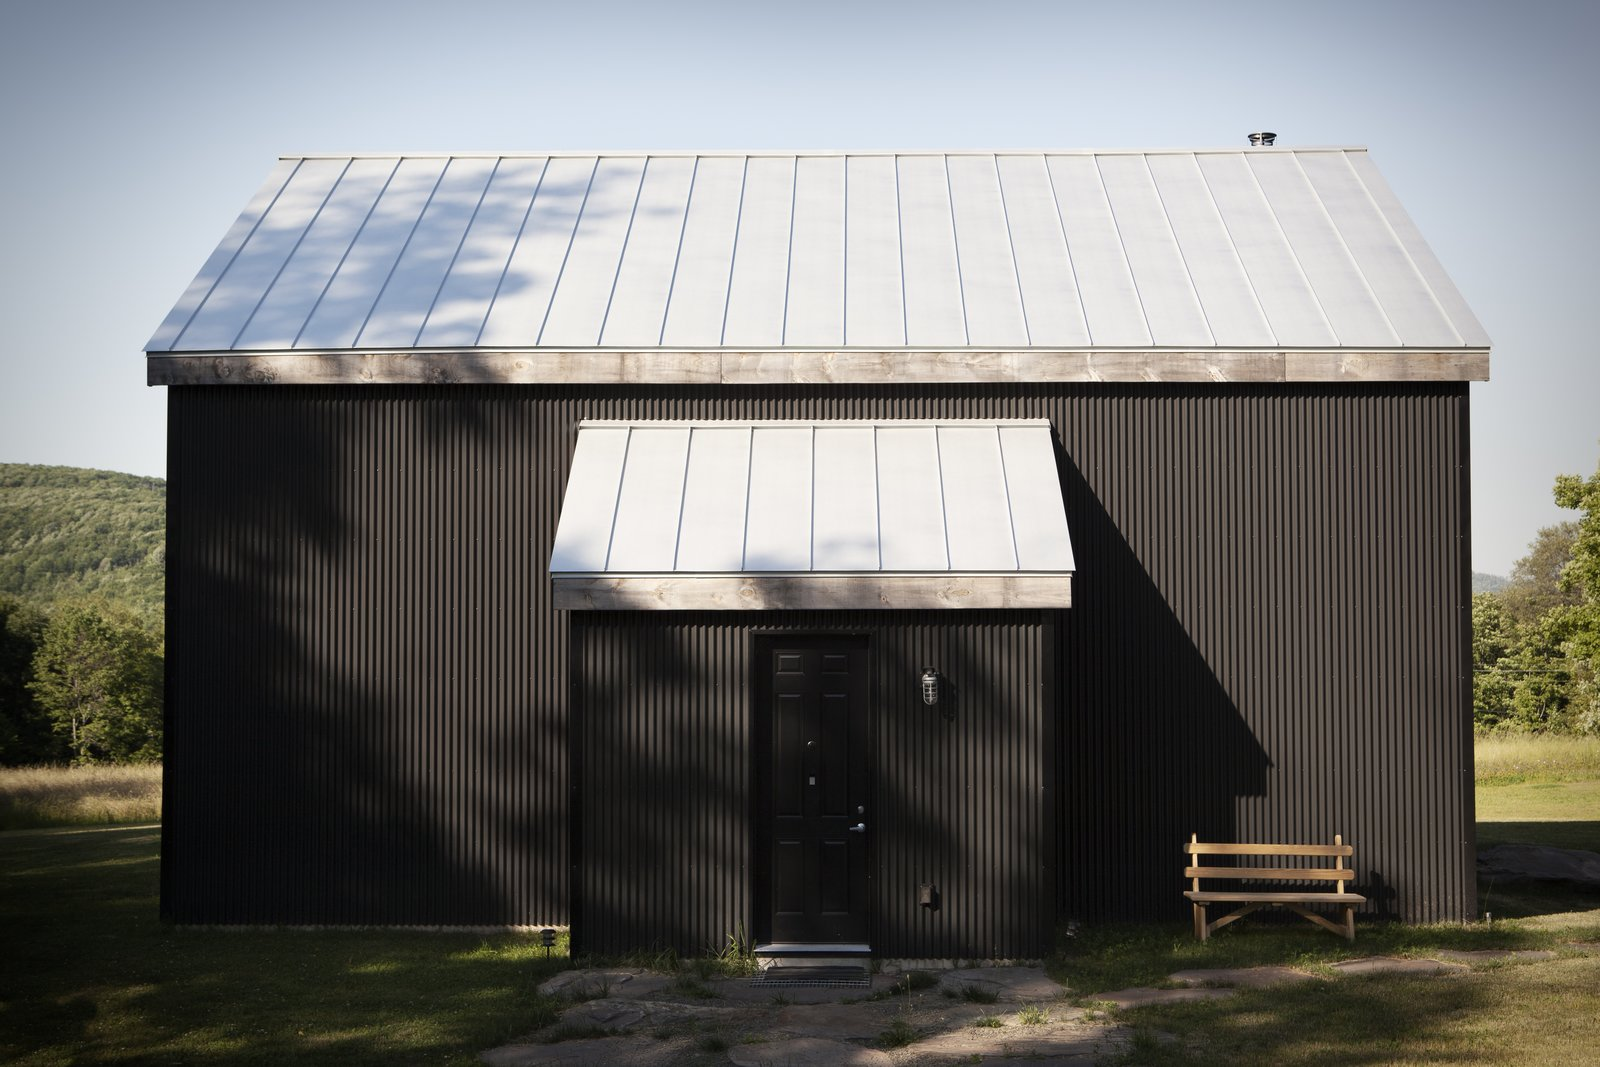 "In Scandinavian regions, traditional cabins are painted black using a mixture of tar and linseed oil. Peck reproduced the look using corrugated metal—a lower-maintenance, more sustainable material. ""We love that it is black, because it really reminds us of home,"" Bronee says. The house has no windows on its front side, belying its light-flooded interior. Tagged: Exterior, Cabin Building Type, and Metal Roof Material.  30+ All-Black Exterior Modern Homes by Zachary Edelson from A Slice of Scandinavian Design in the Catskills"